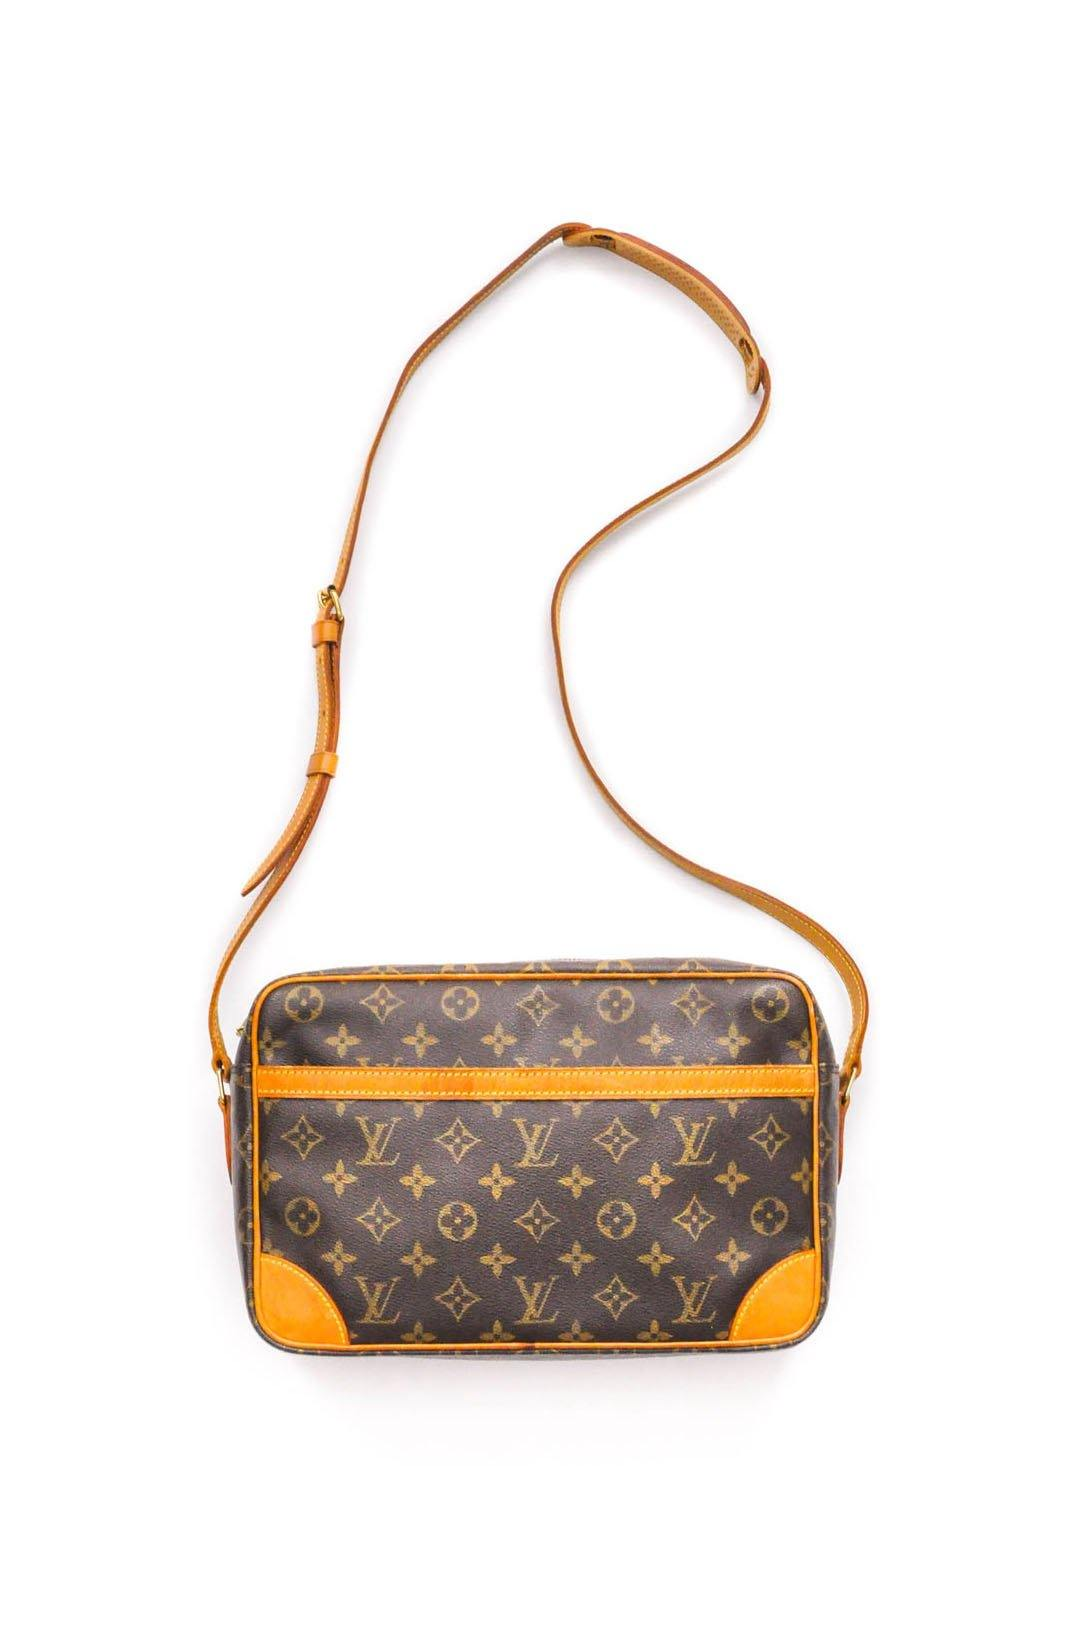 Louis Vuitton Trocadero Bag